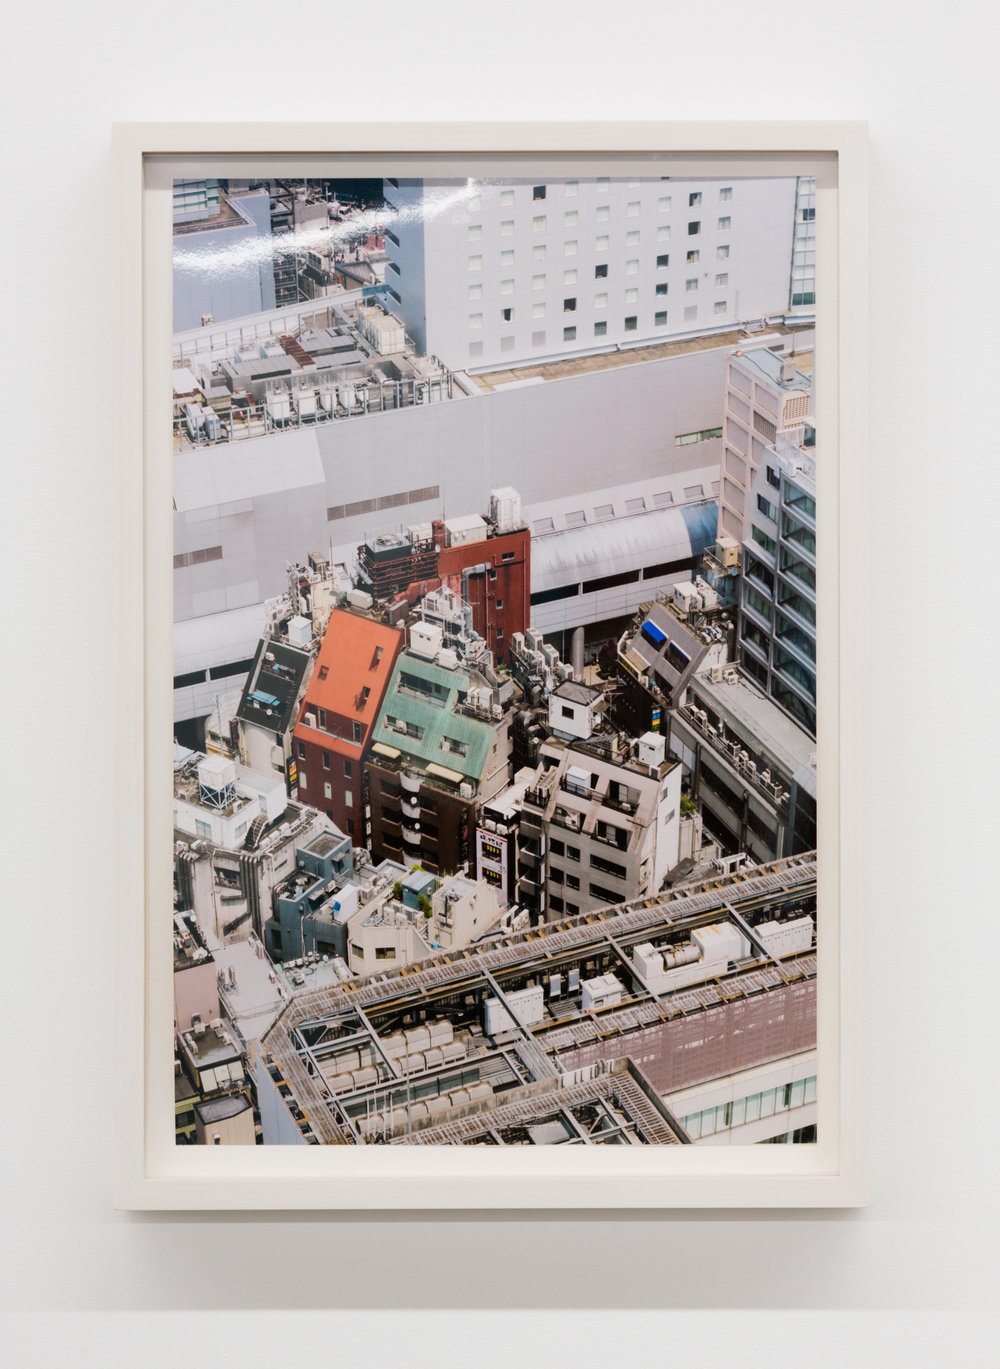 Untitled (Shibuya I), Tokyo, Japan,  2017, Chromira print on Glossy Fujicolor Crystal Archive Paper, Unframed: 14 x 9 1/3 inches, Framed: 15 3⁄4 x 12 5/8 x 1 3/8 inches